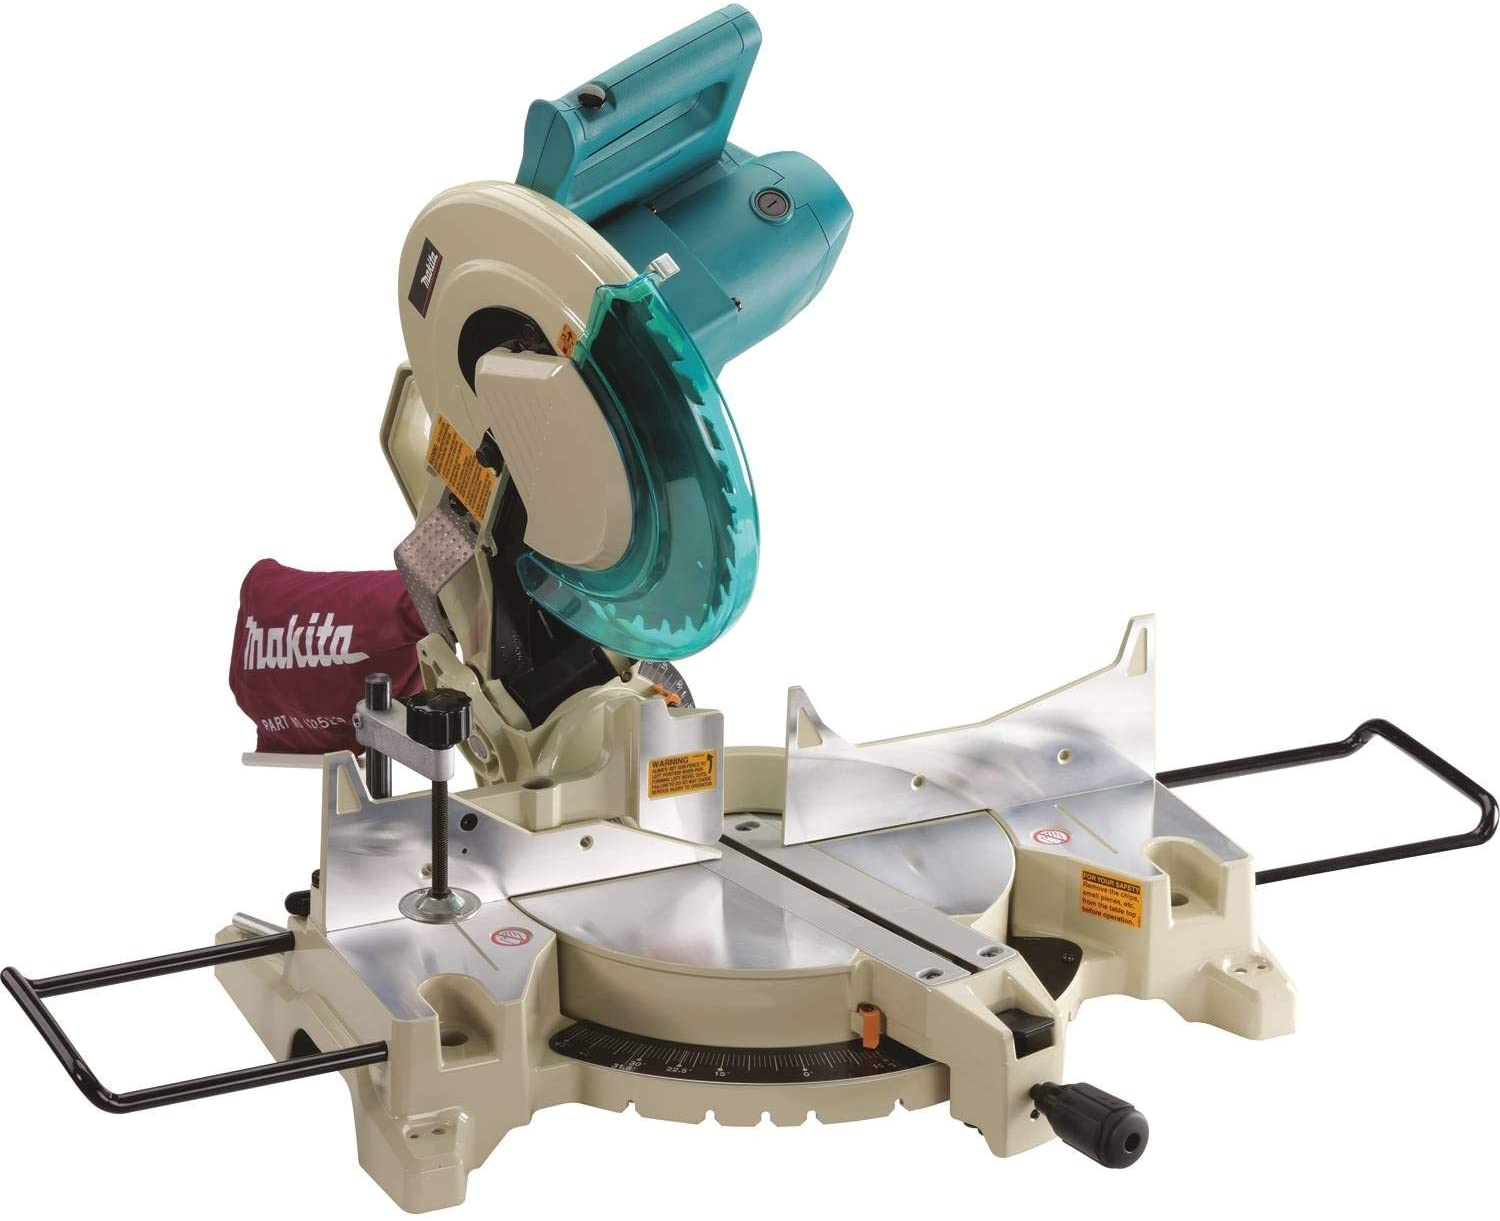 2. Makita LS1221 12-Inch Compound Miter Saw Kit